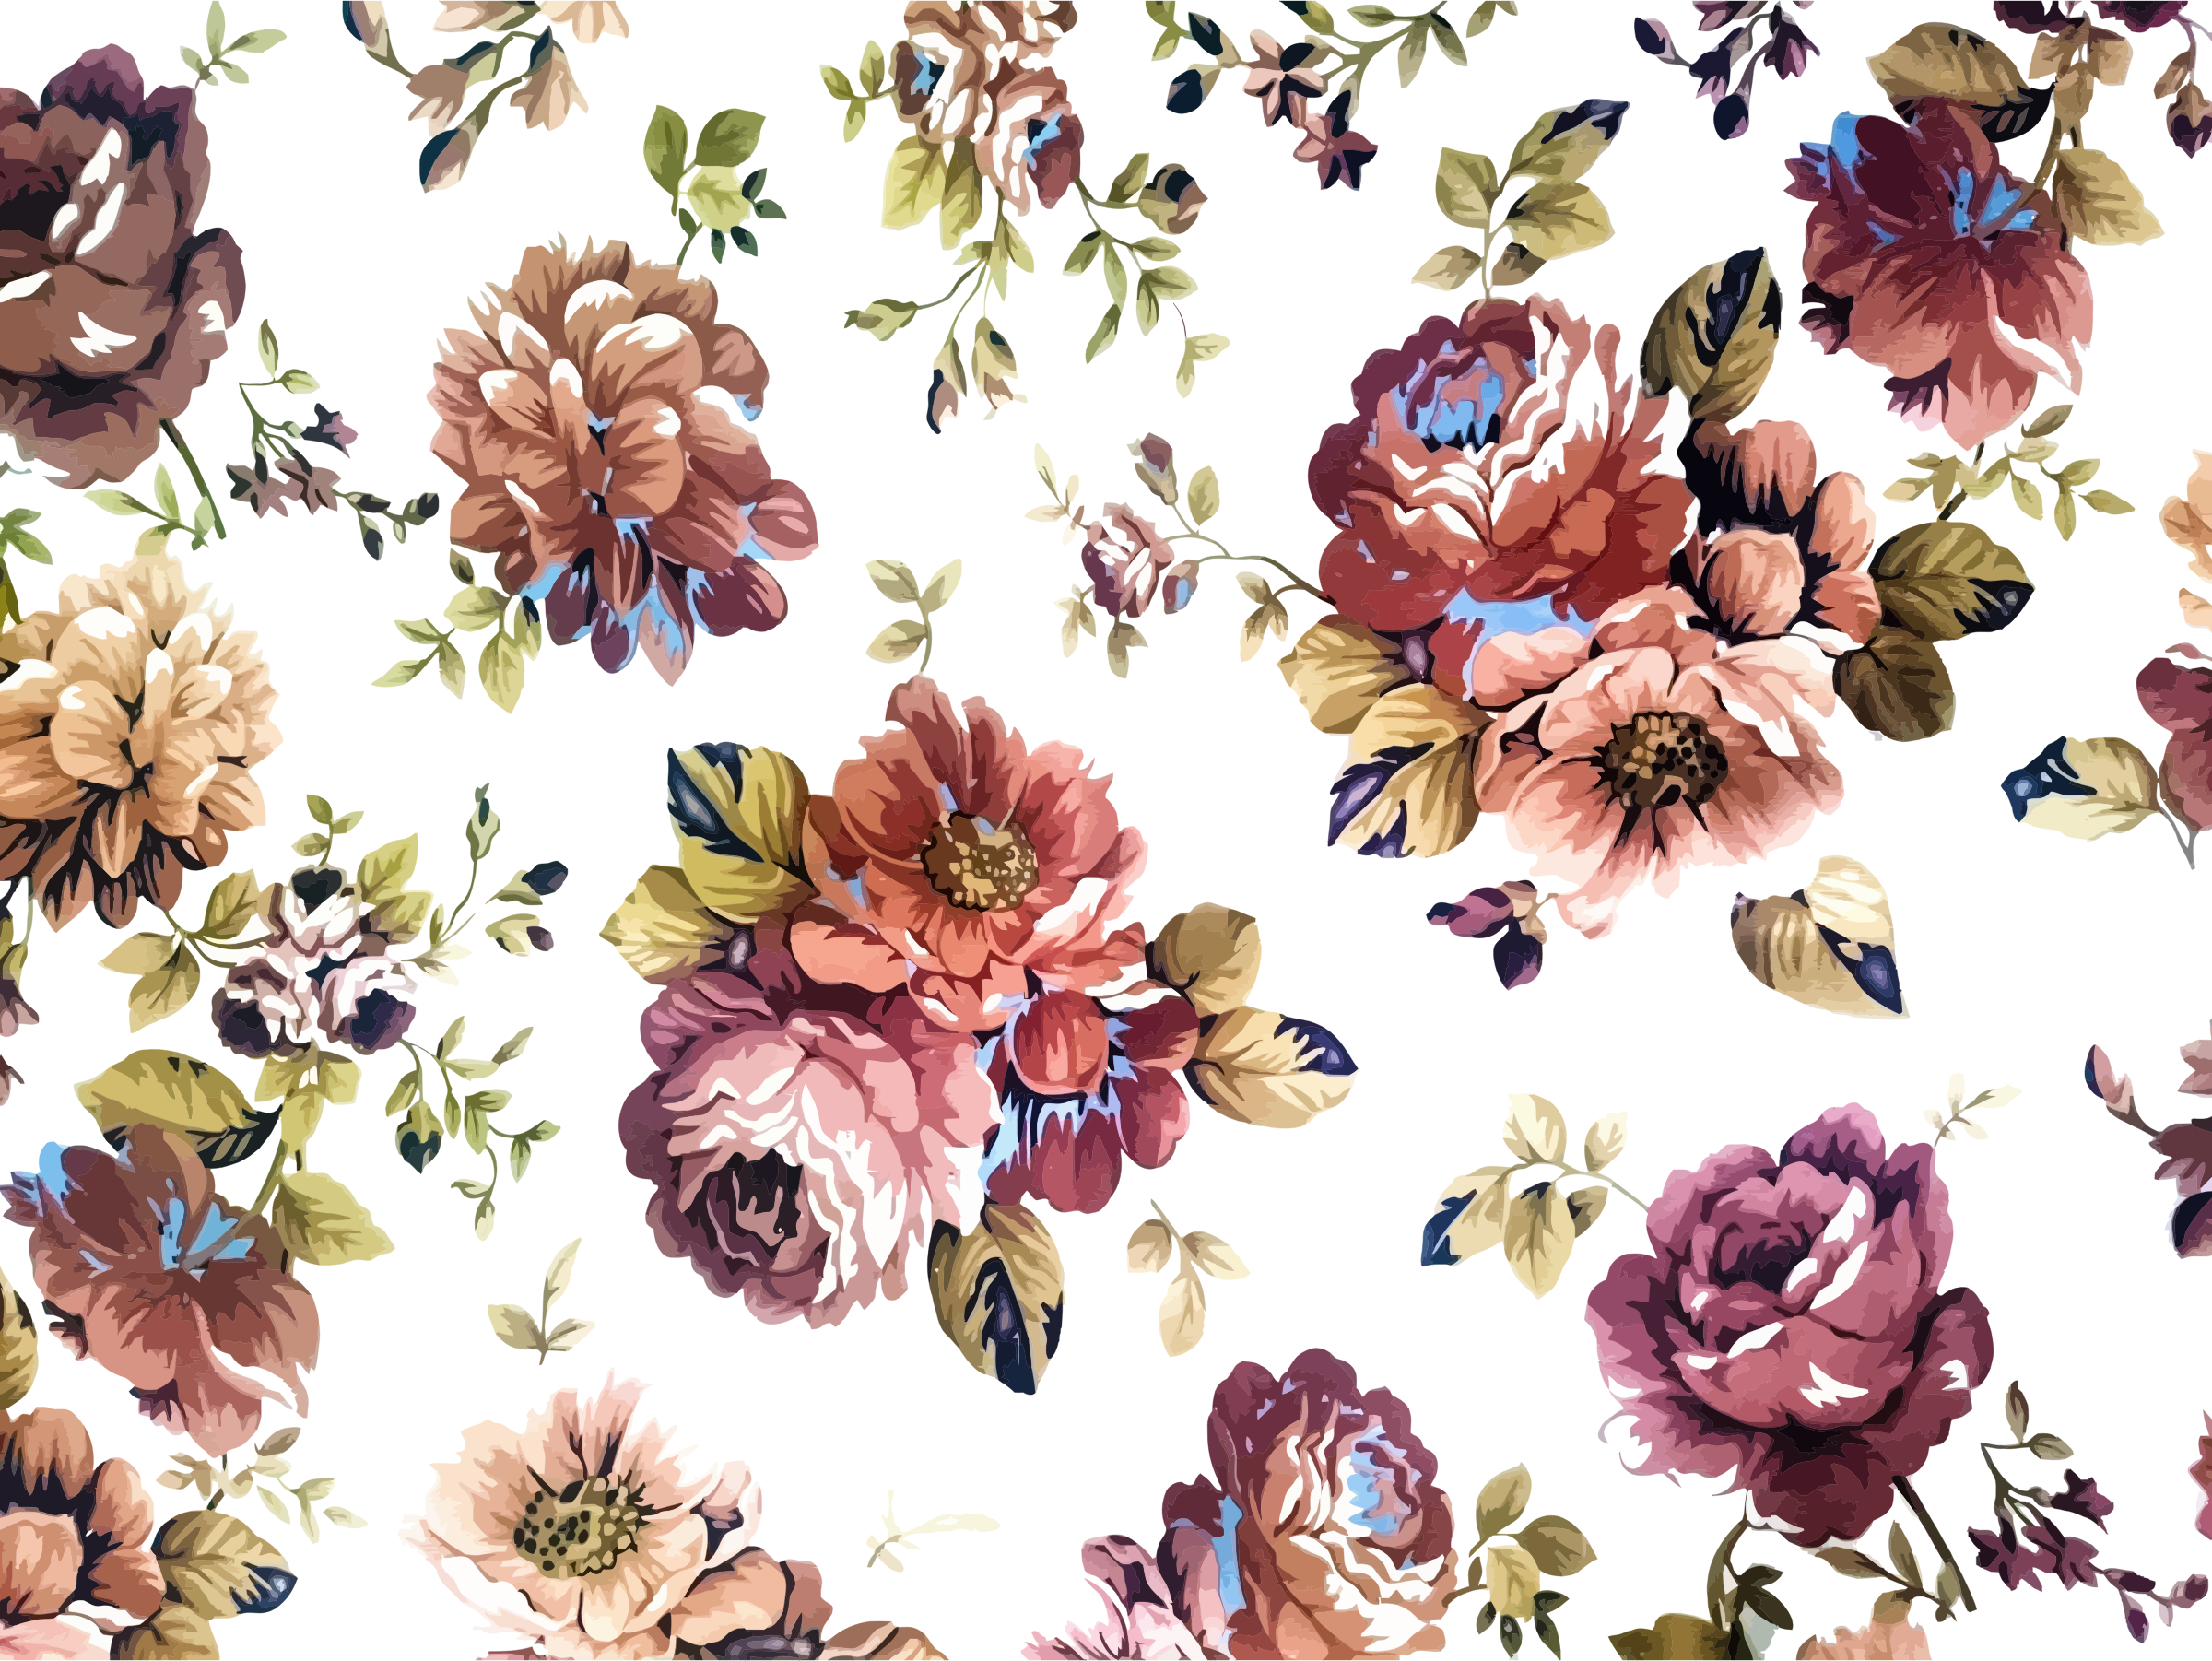 Floral Wallpapers Pattern Hq Floral Pictures 4k Wallpapers 2019